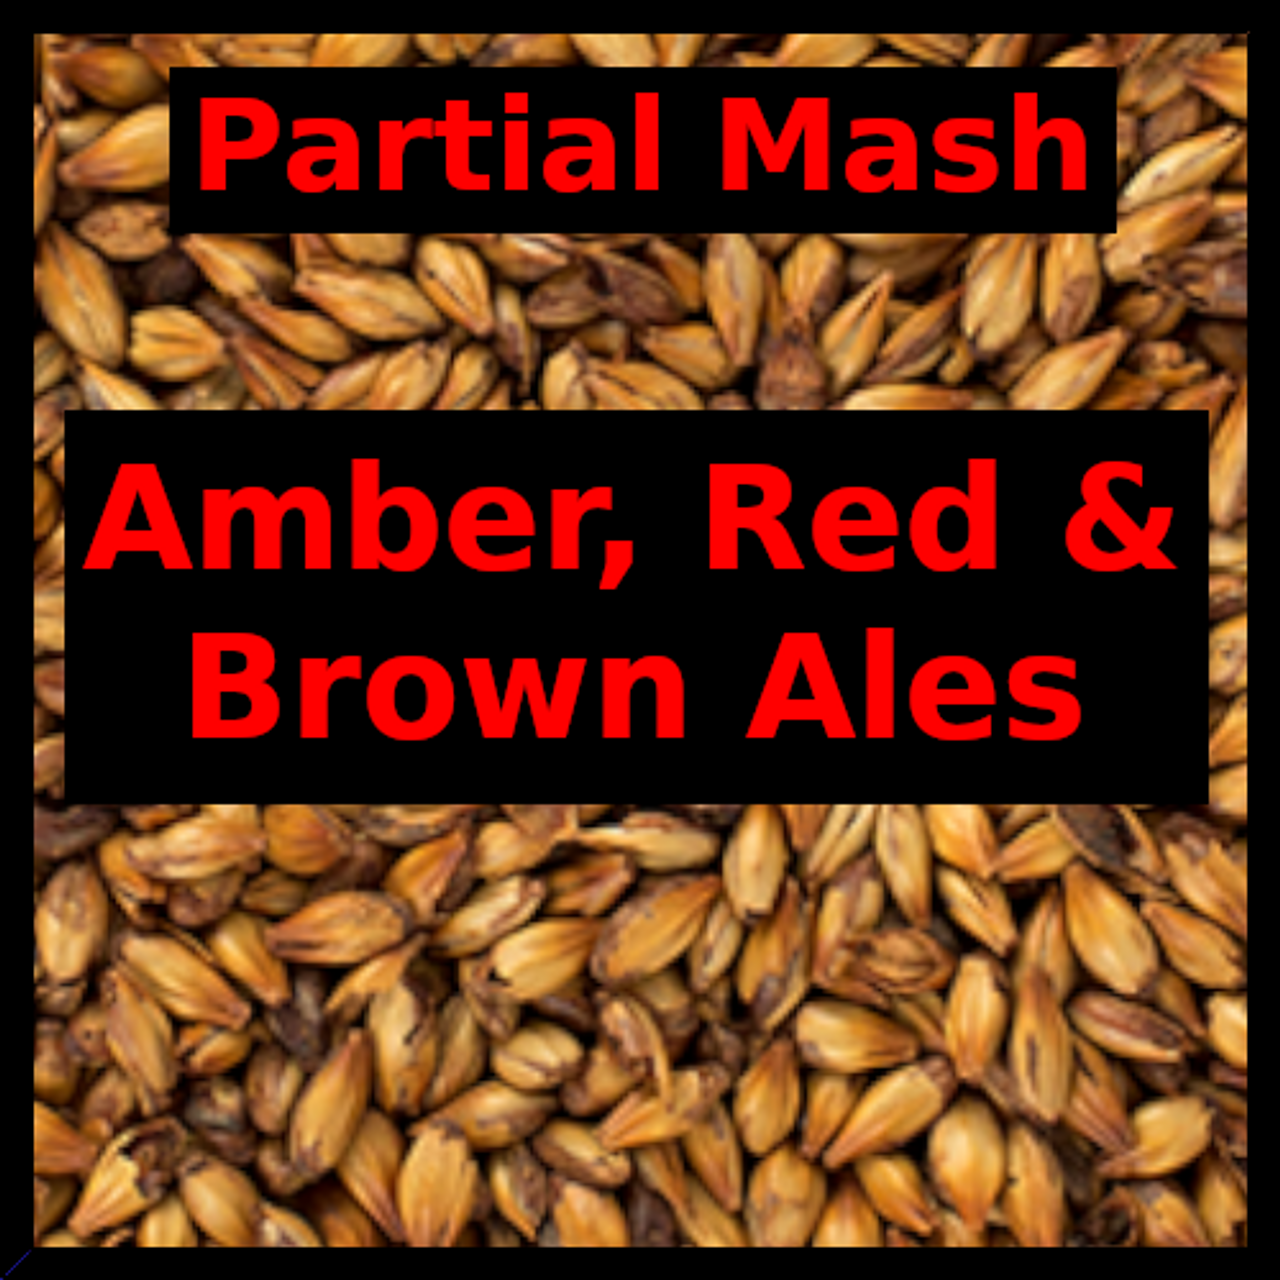 Amber, Red & Brown Ales - Partial Mash